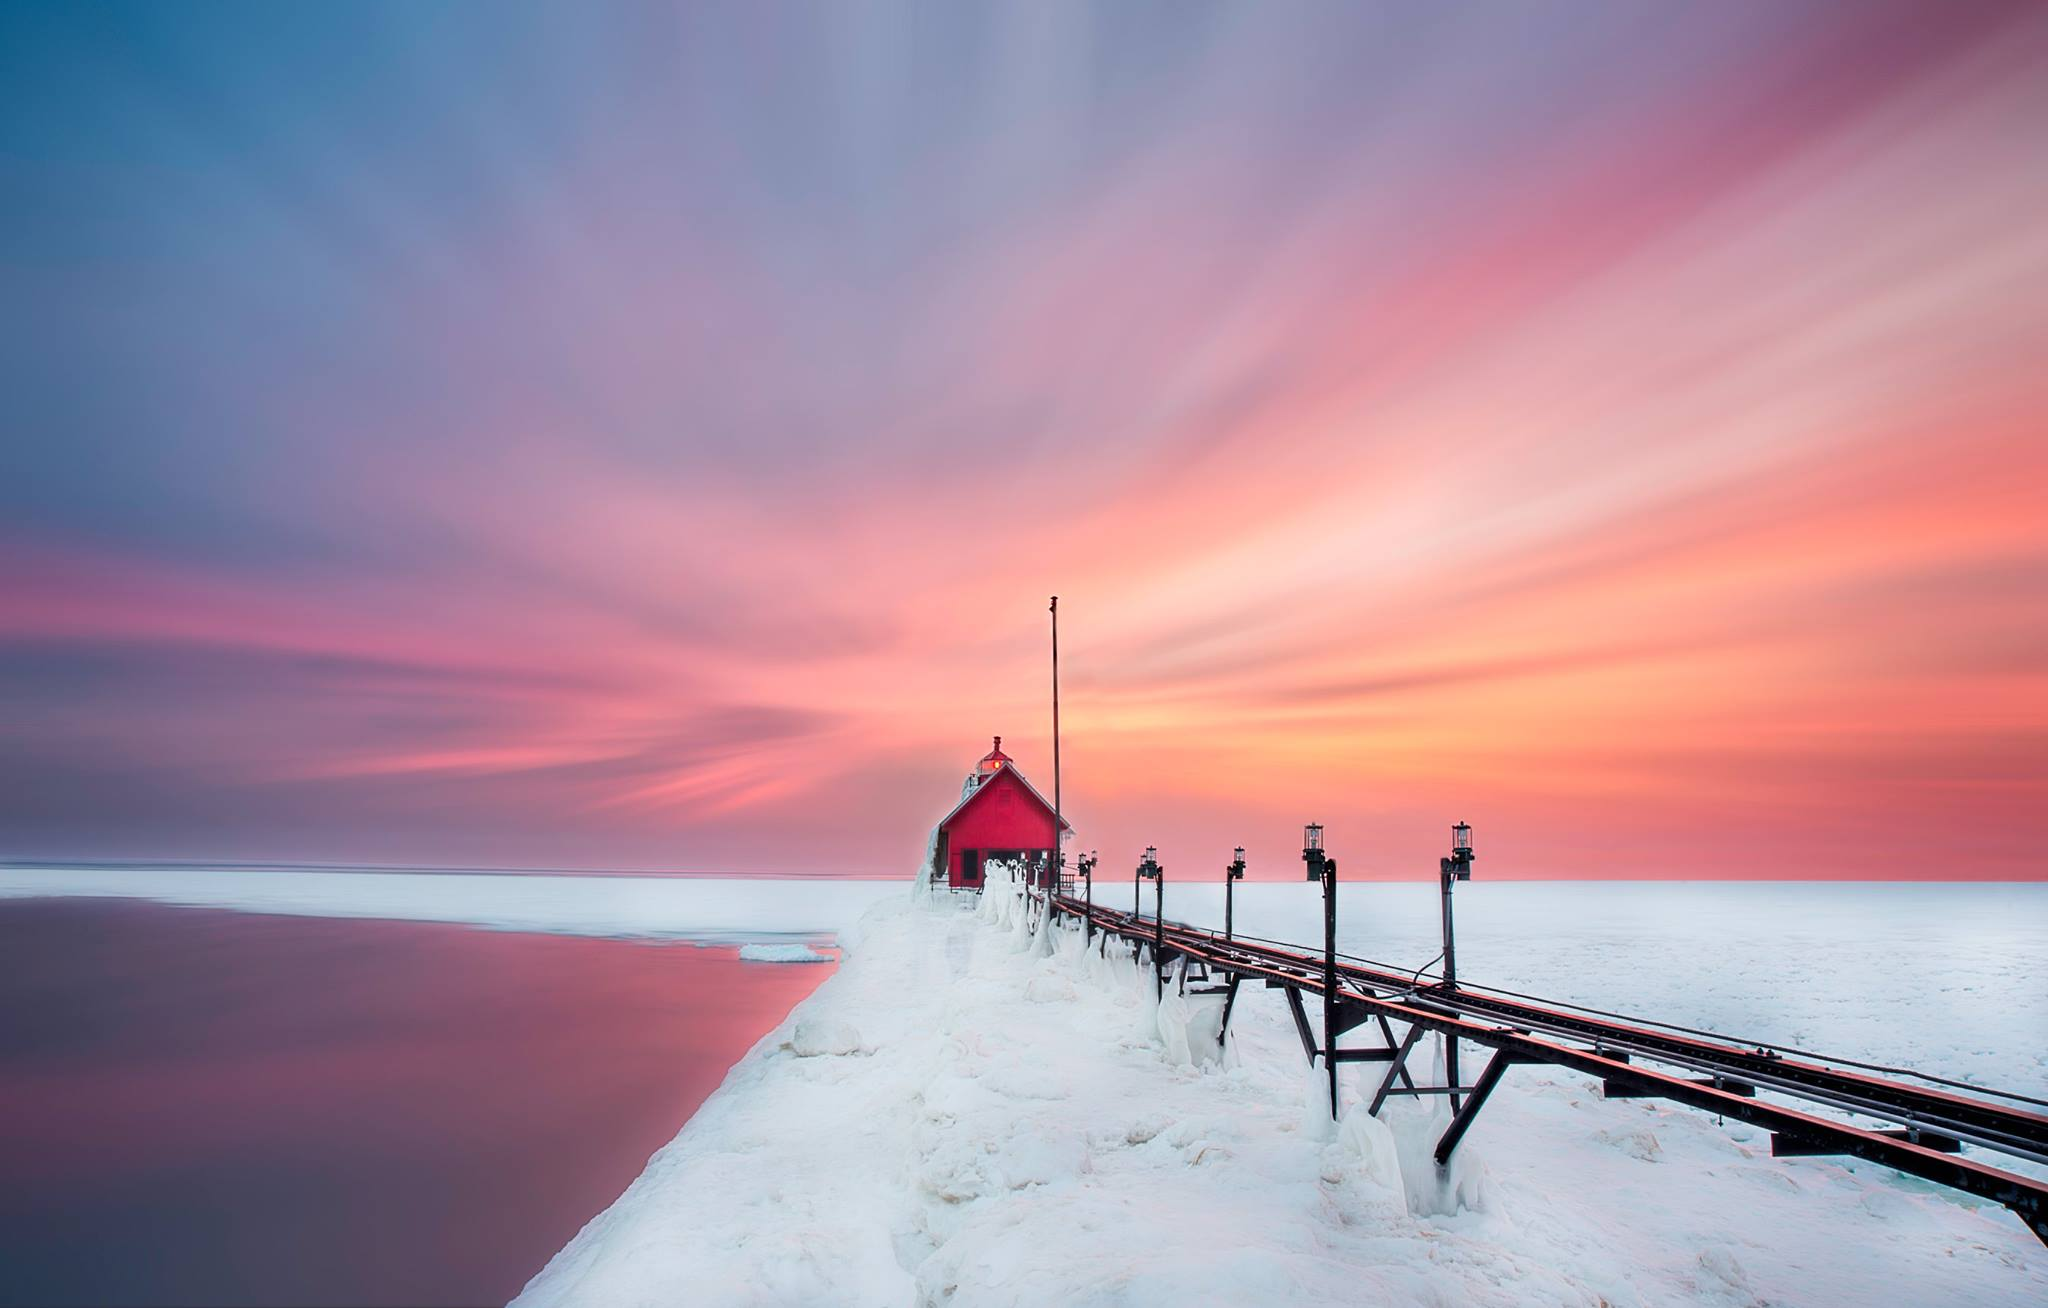 Masphoto for sharing this stunner from Visit Grand Haven..jpg